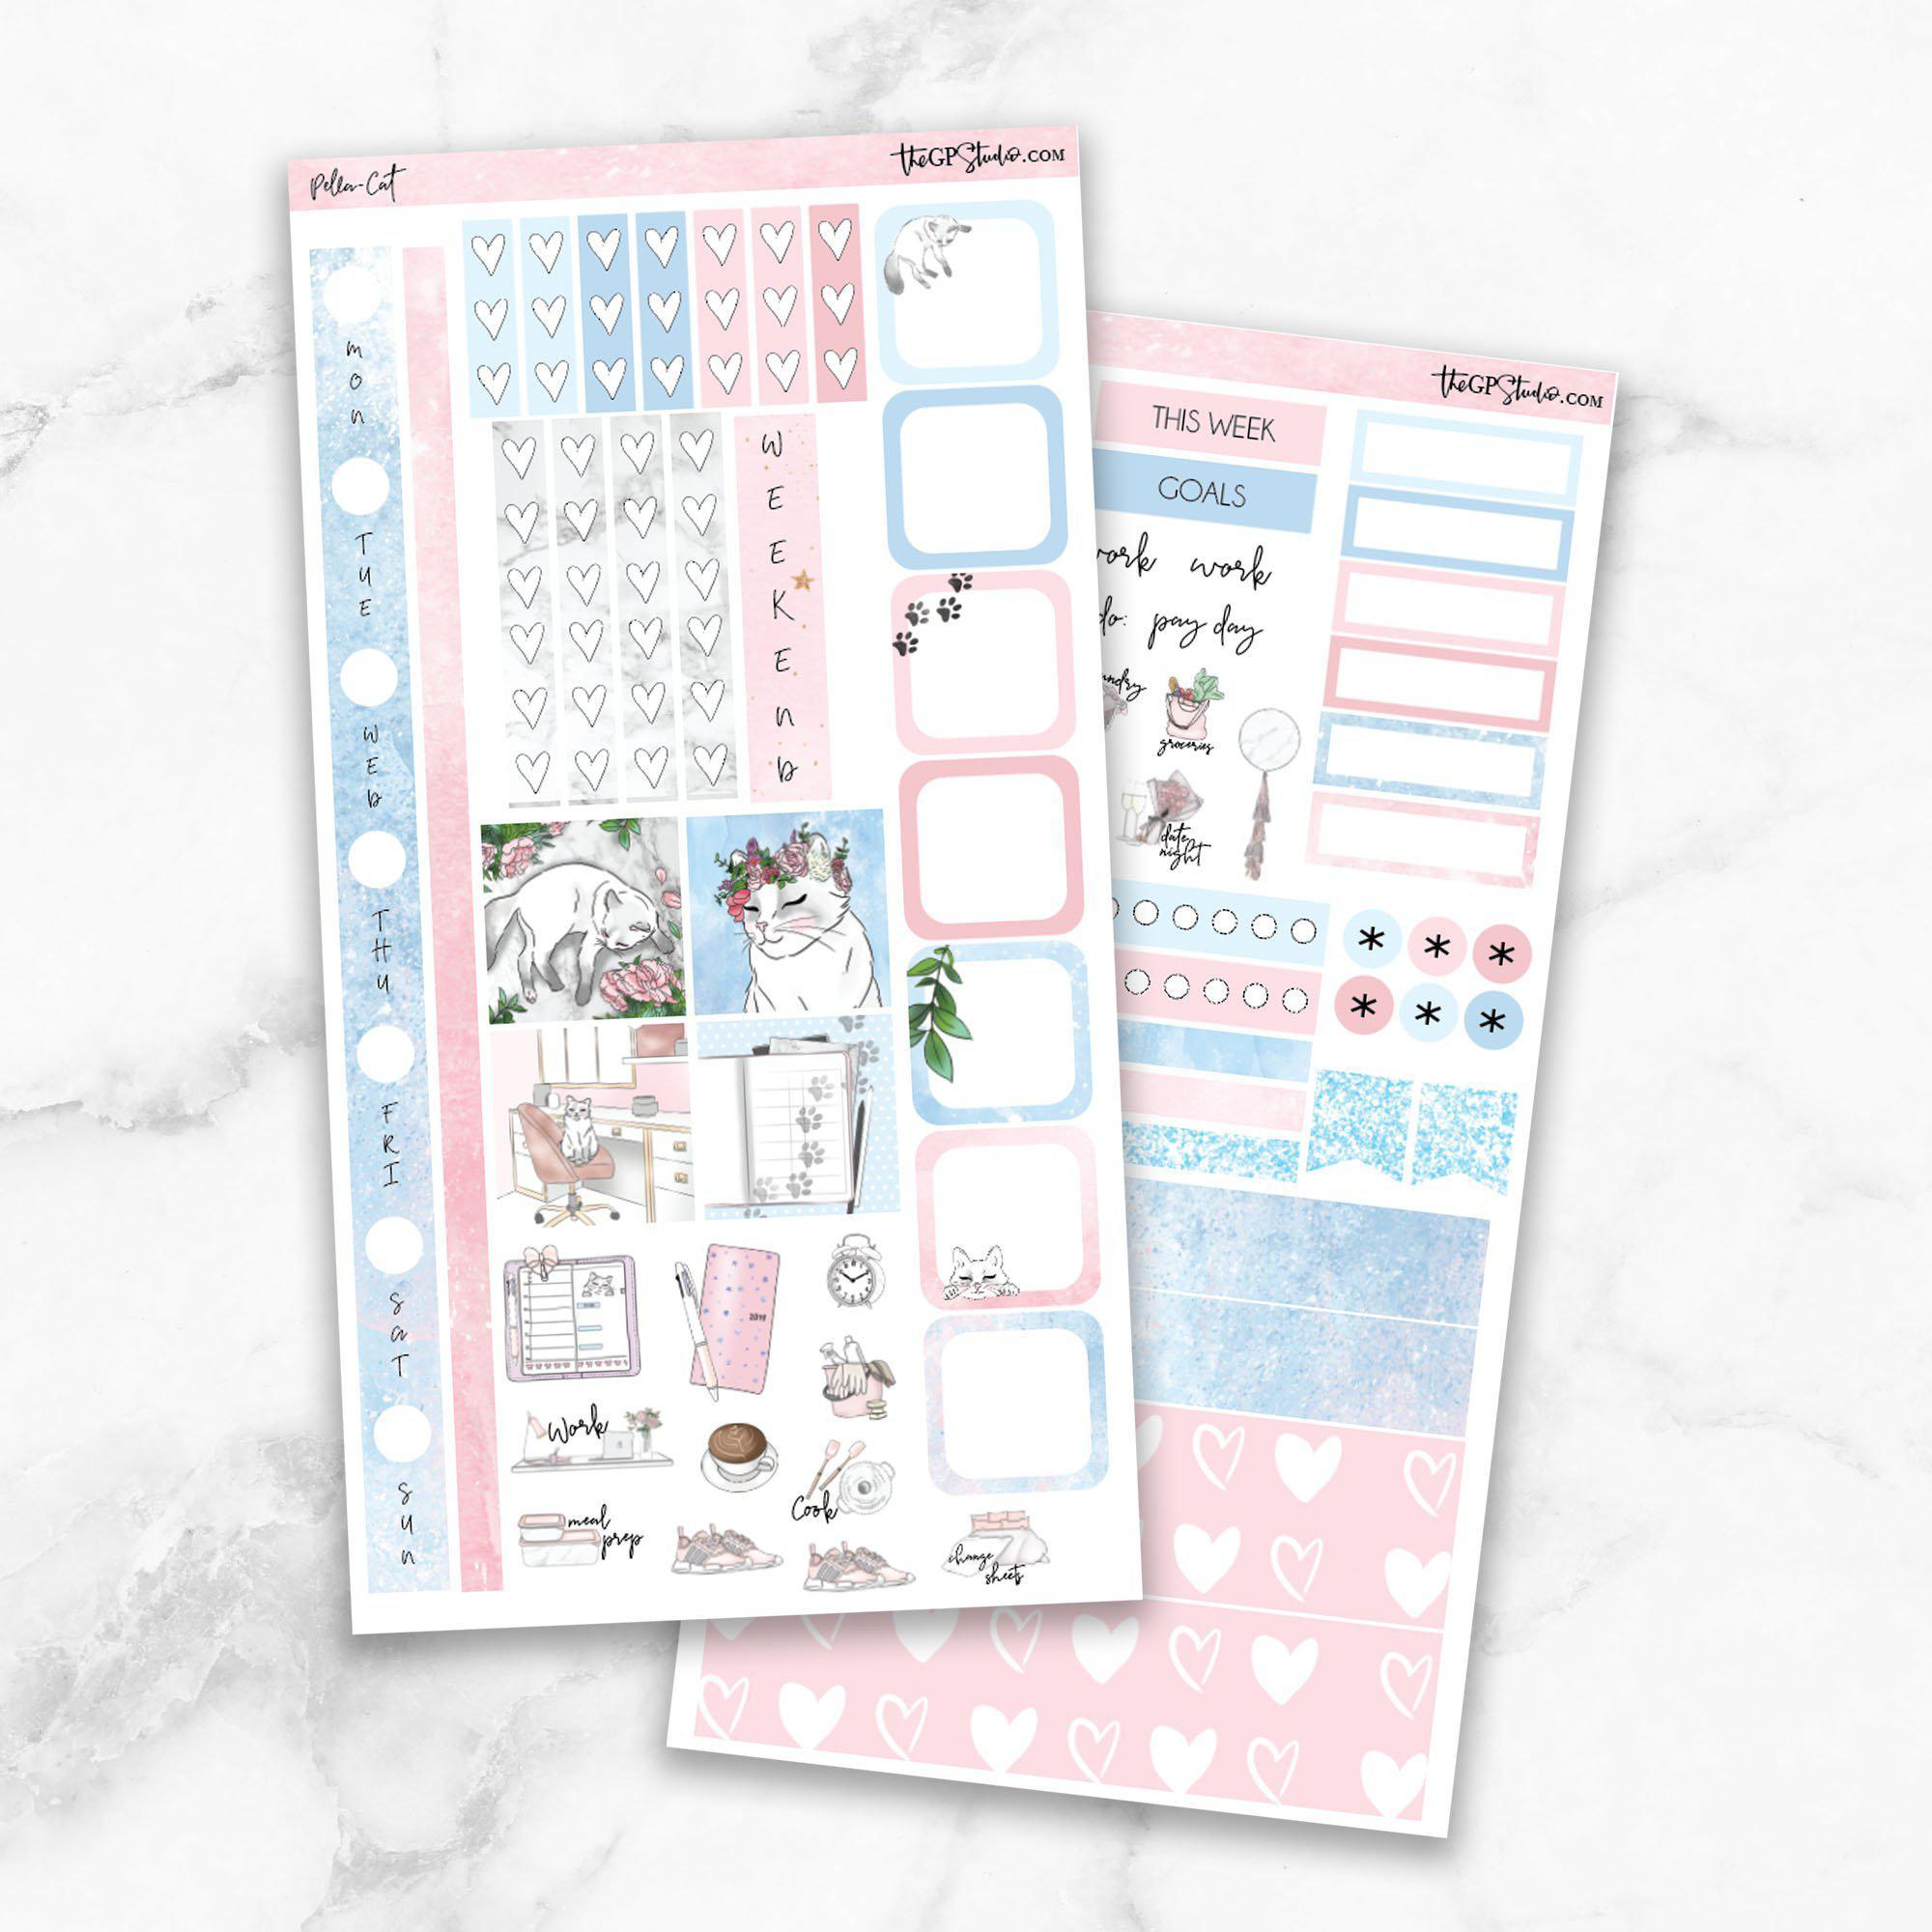 PELLA CAT KIT Hobonichi Weekly Size Planner Sticker Kit-The GP Studio